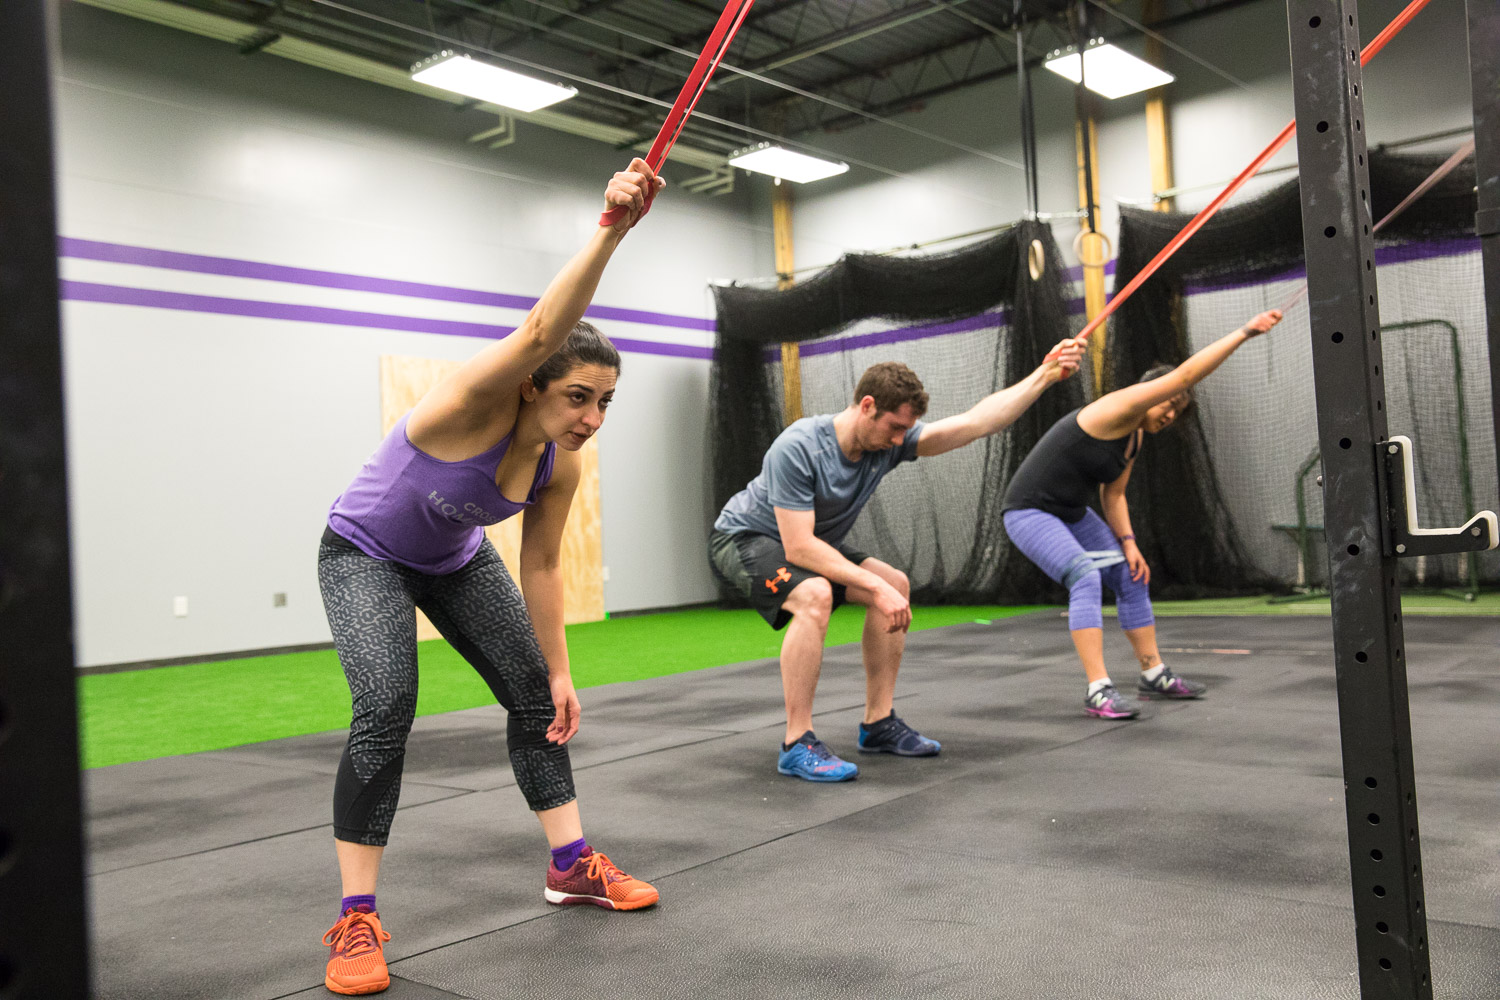 Using resistance bands can help stretch tight and sore muscles.